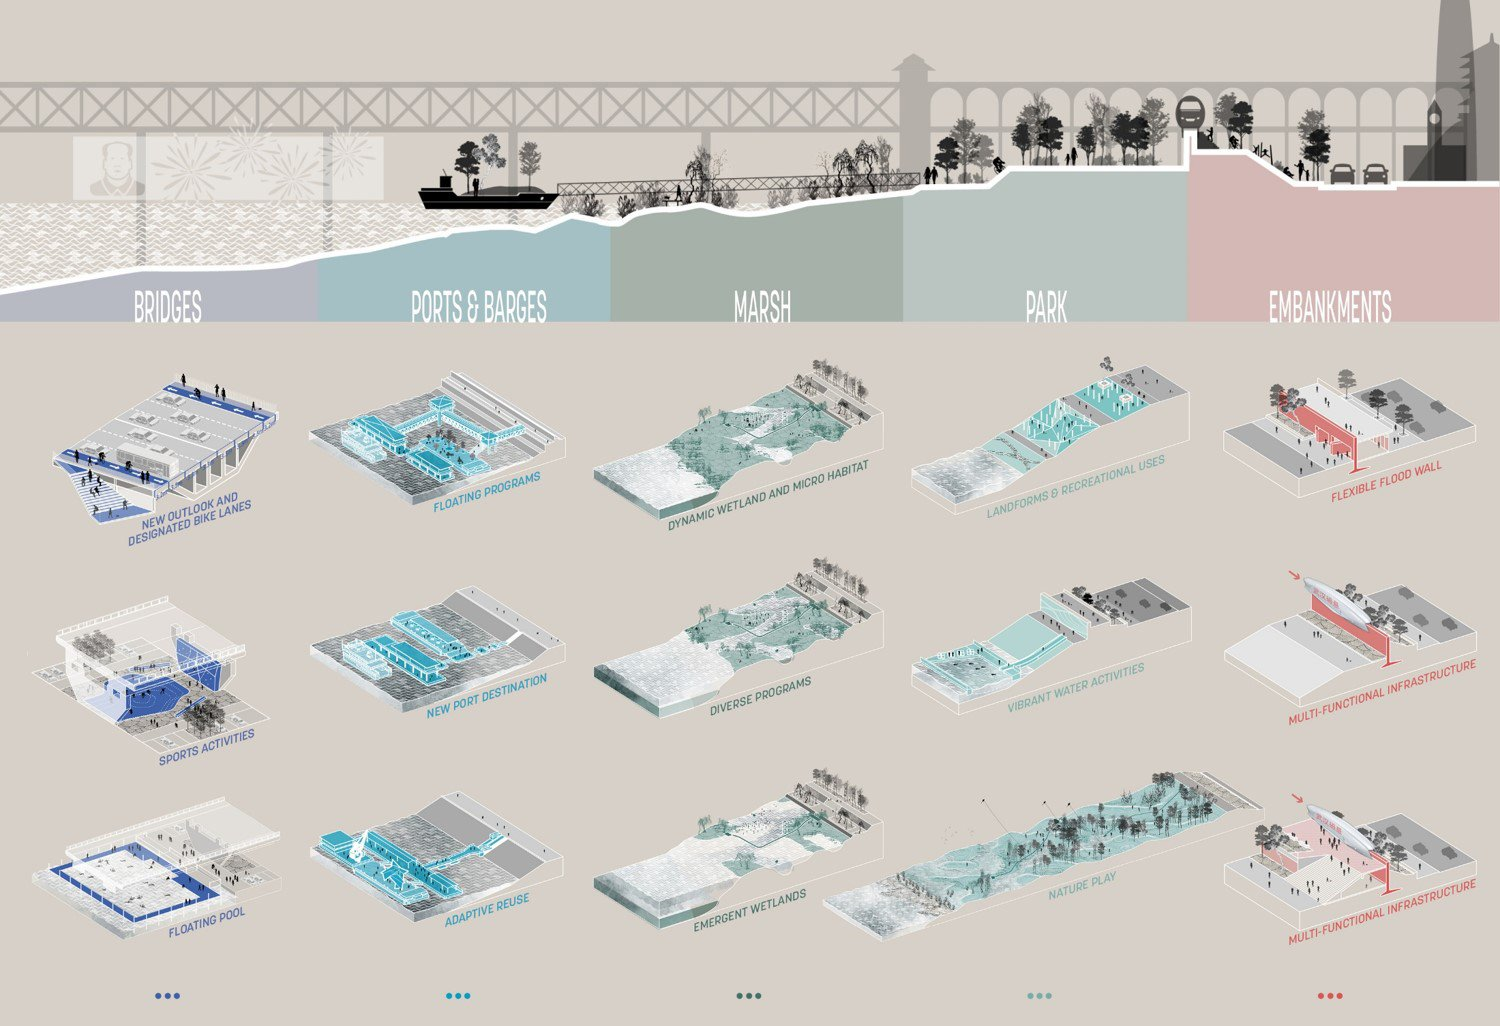 A DIVERSITY OF WATERFRONT CONDITIONS: A variety of site conditions were organized into five key spatial components, with a comprehensive toolkit providing flexible solutions to each respective challenge. SASAKI